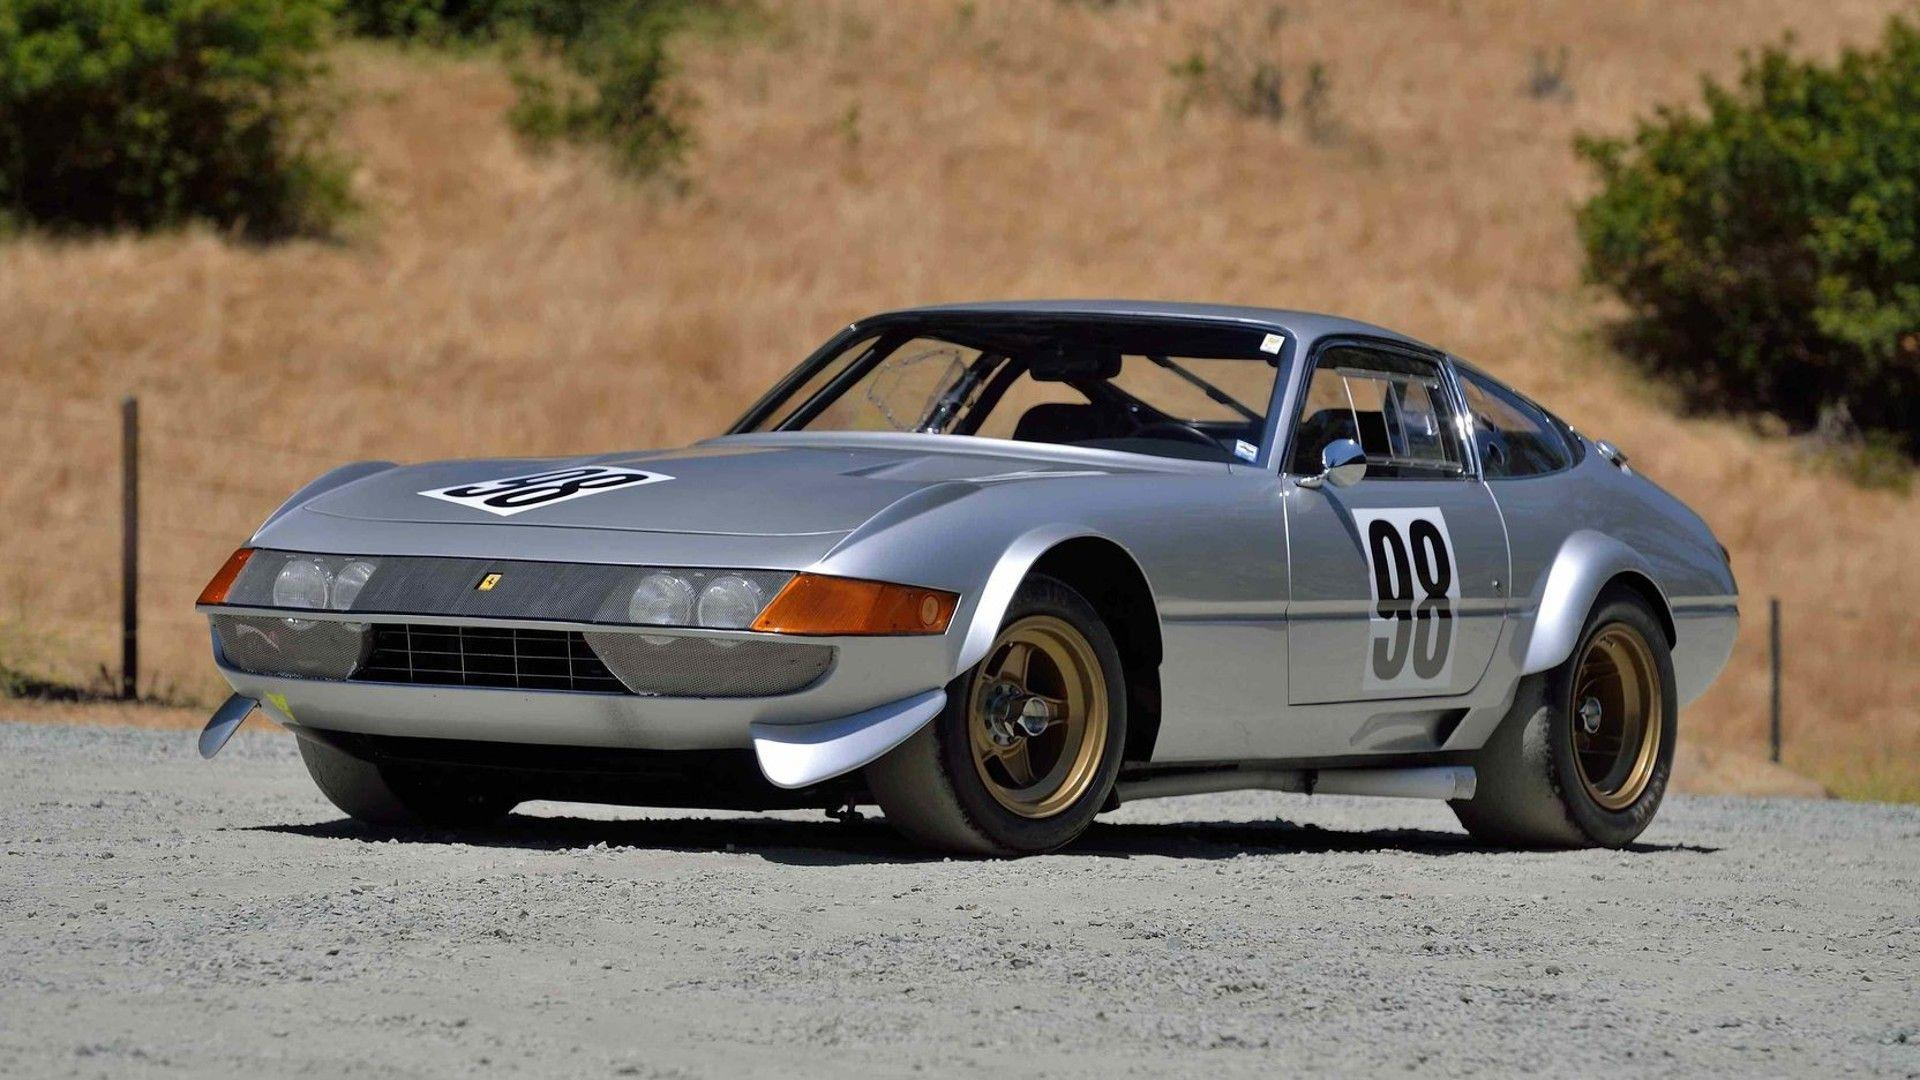 Ferrari 365 GTB4 Daytona Competizione in auction (1)